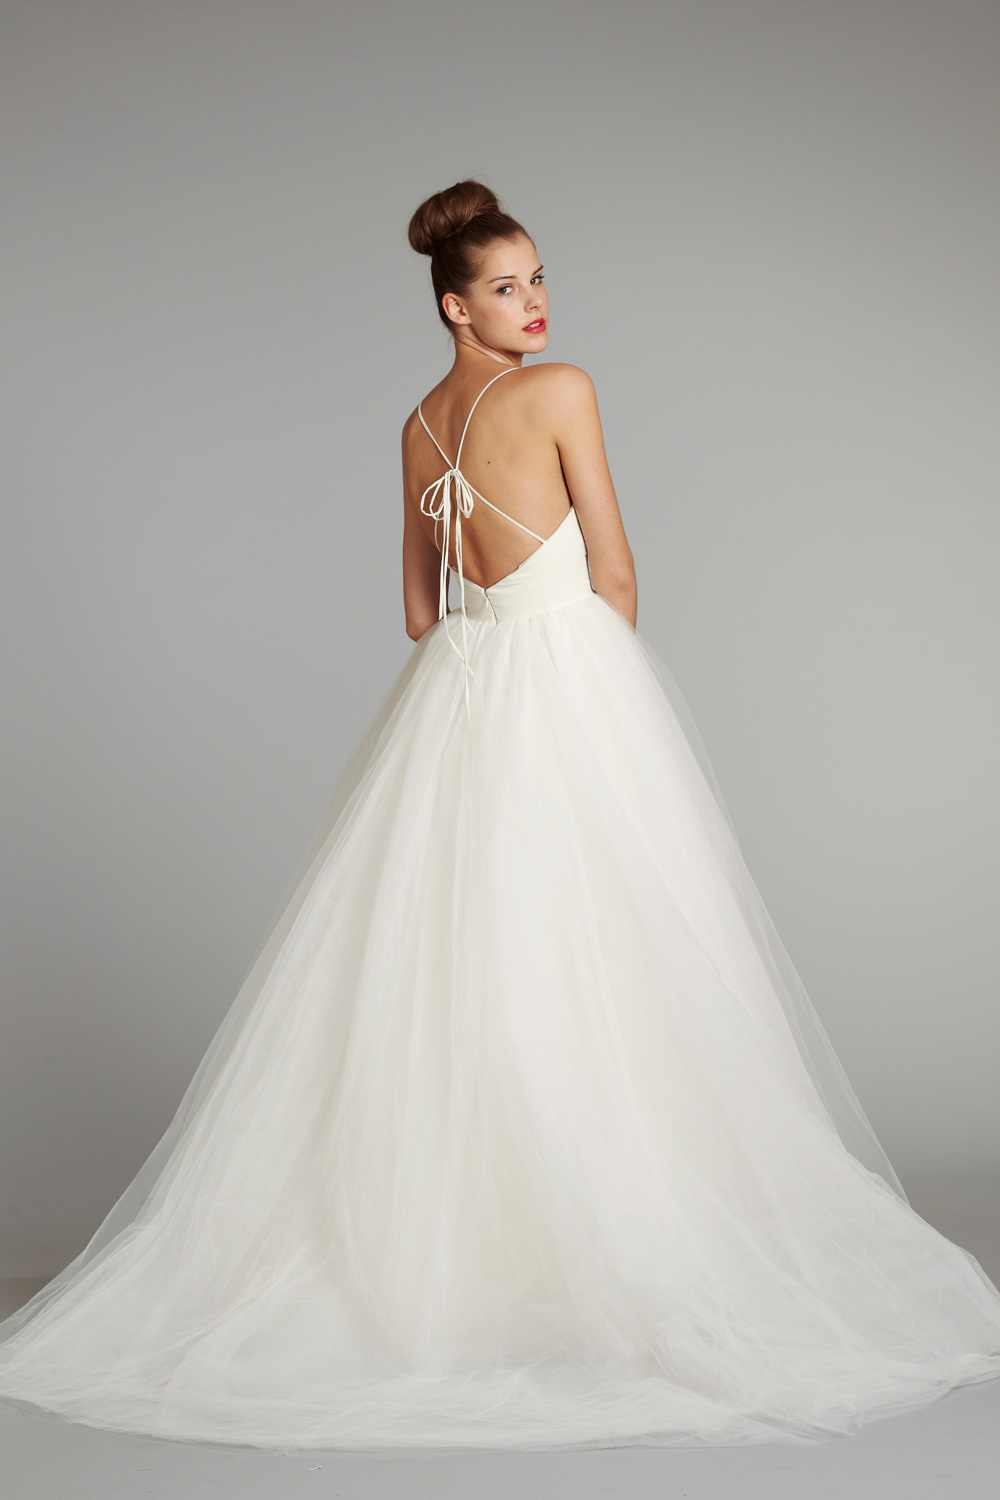 Bridal-gown-wedding-dress-jlm-hayley-paige-blush-fall-2012-lilac-white-back.full